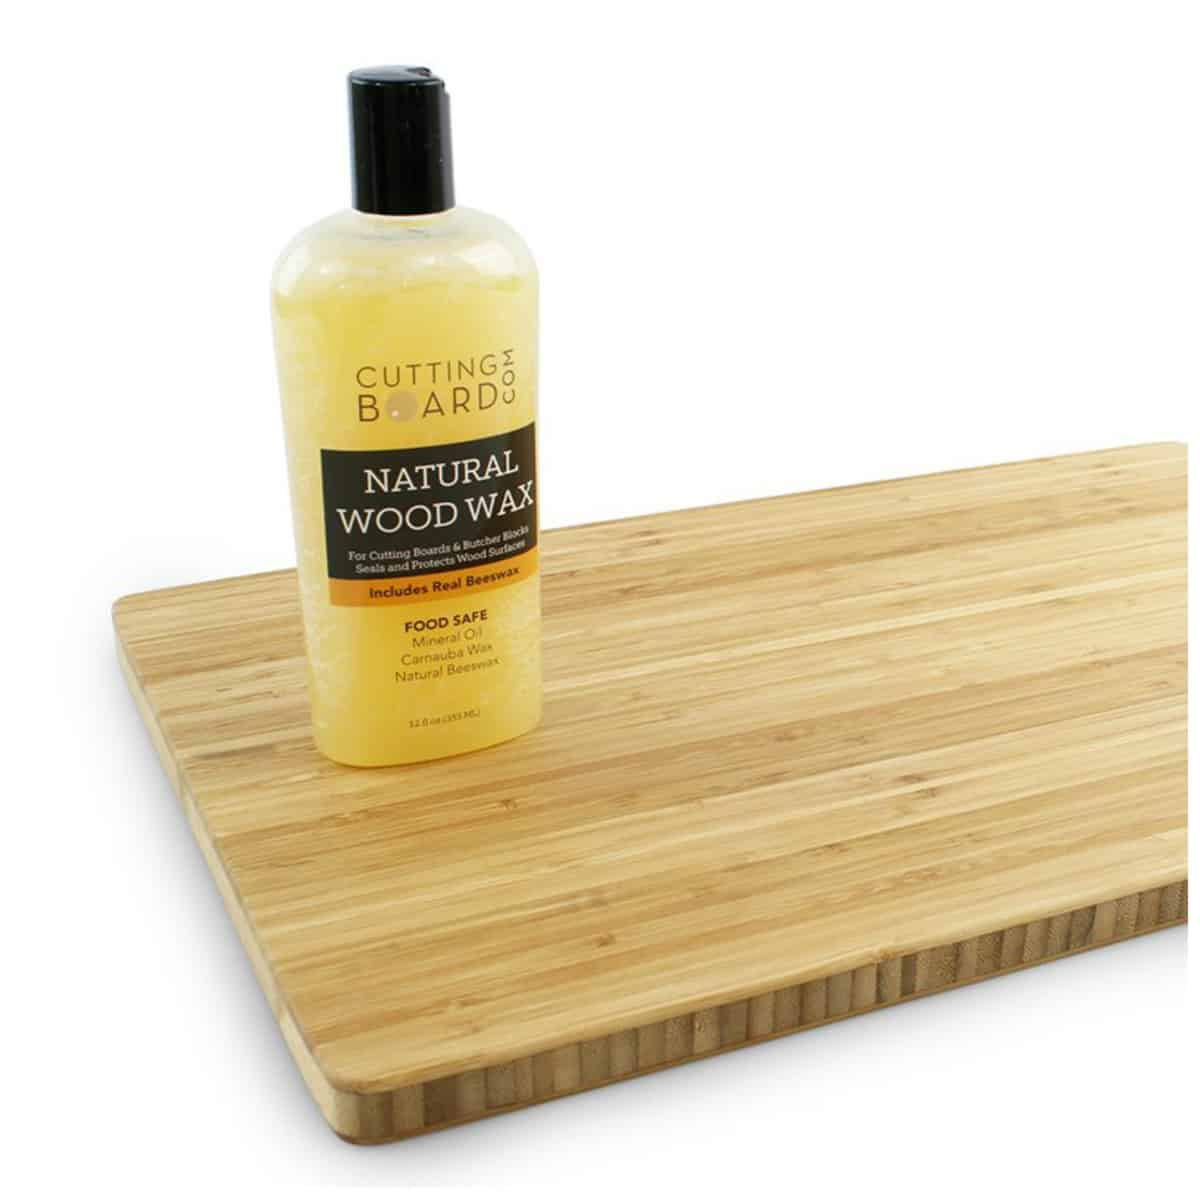 Cutting Board Wax and Conditioner, Protects Wood Countertops and Butcher Blocks - Made in USA with Real Beeswax